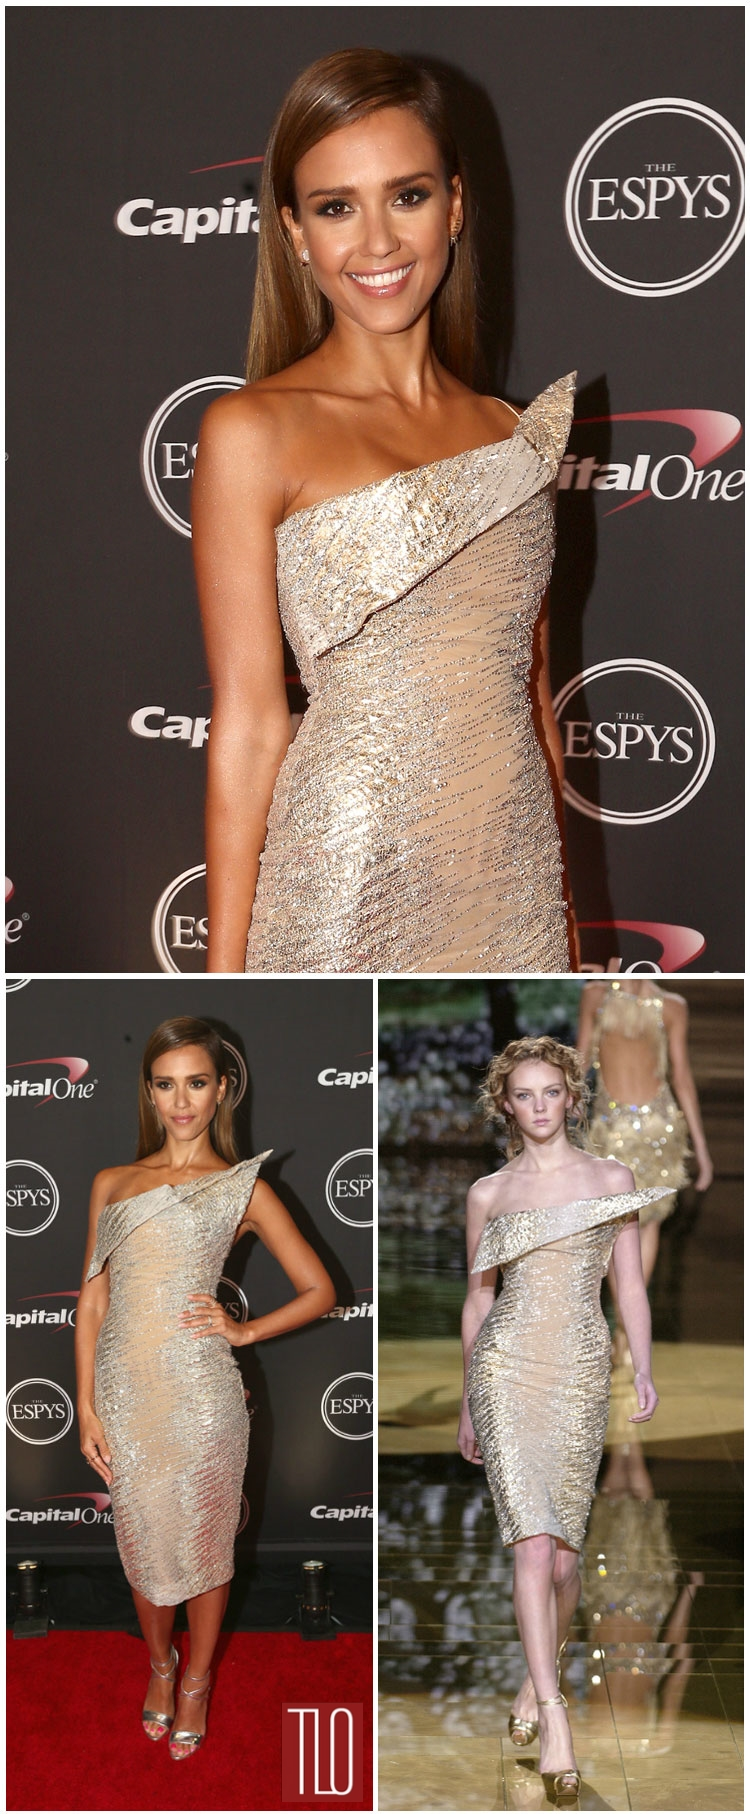 Jessica-Alba-Elie-Saab-Couture-2014-ESPY-Awards-Red-Carpet-Tom-Lorenzo-Site-TLO (1)